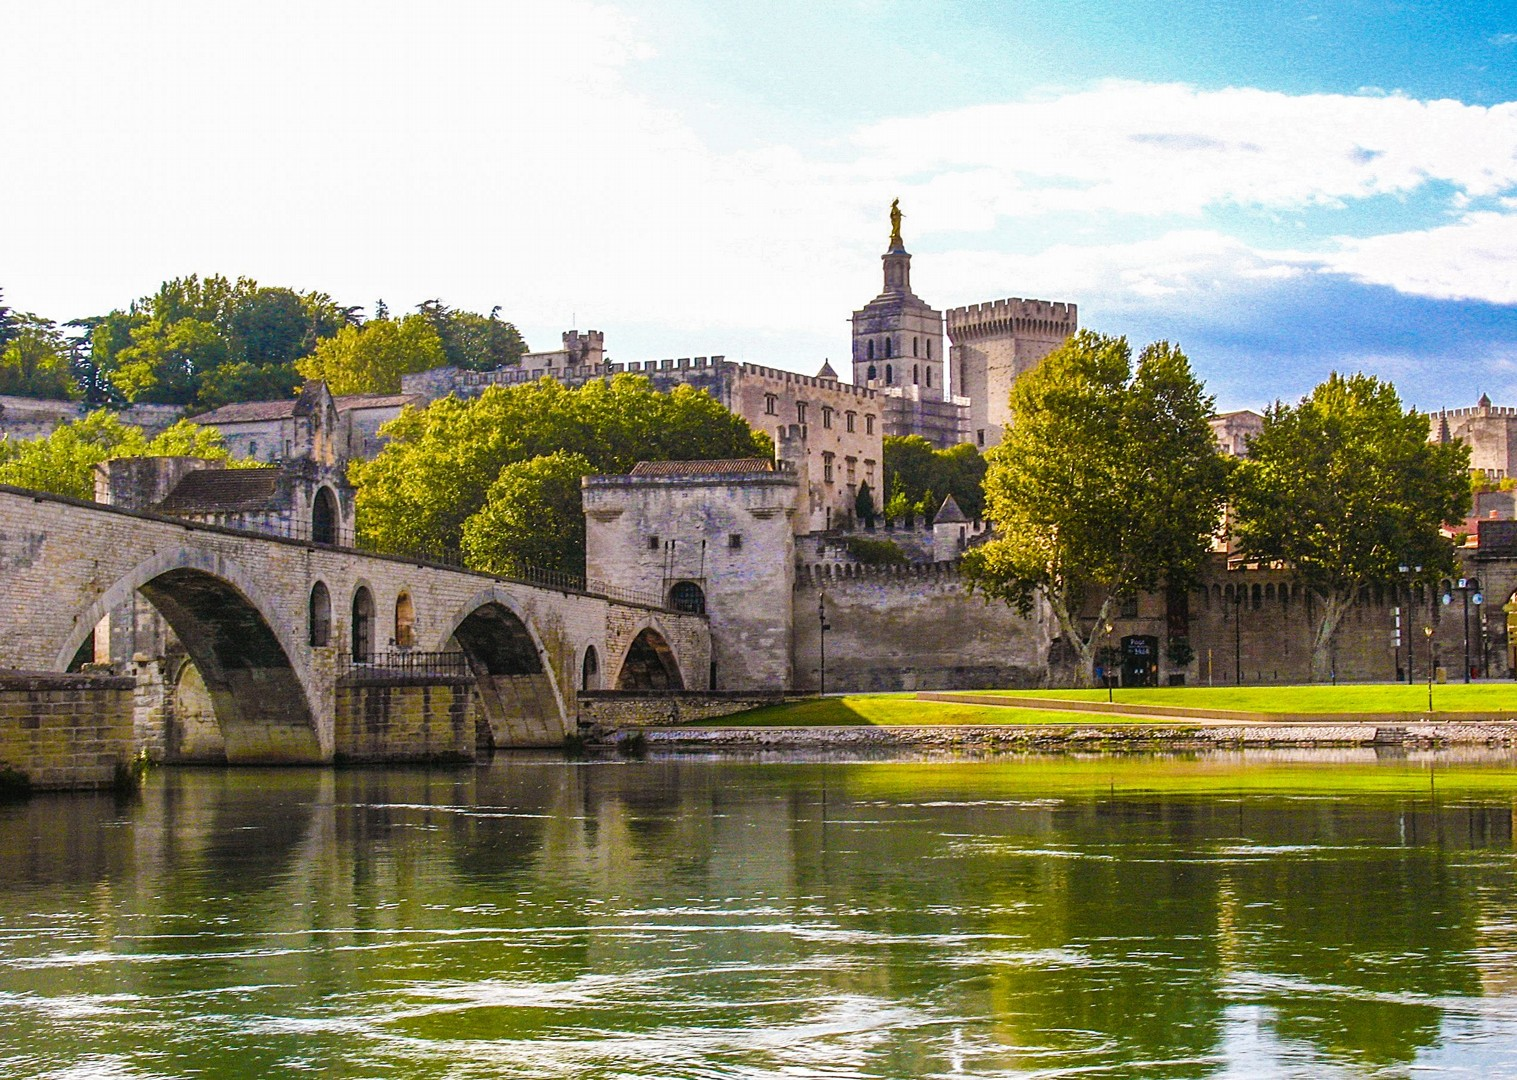 avignon-to-aigues-mortes-palais-des-papes-bike-and-boat-tour.jpg - France - Provence - Avignon to Aigues-Mortes - Bike and Barge Holiday - Leisure Cycling